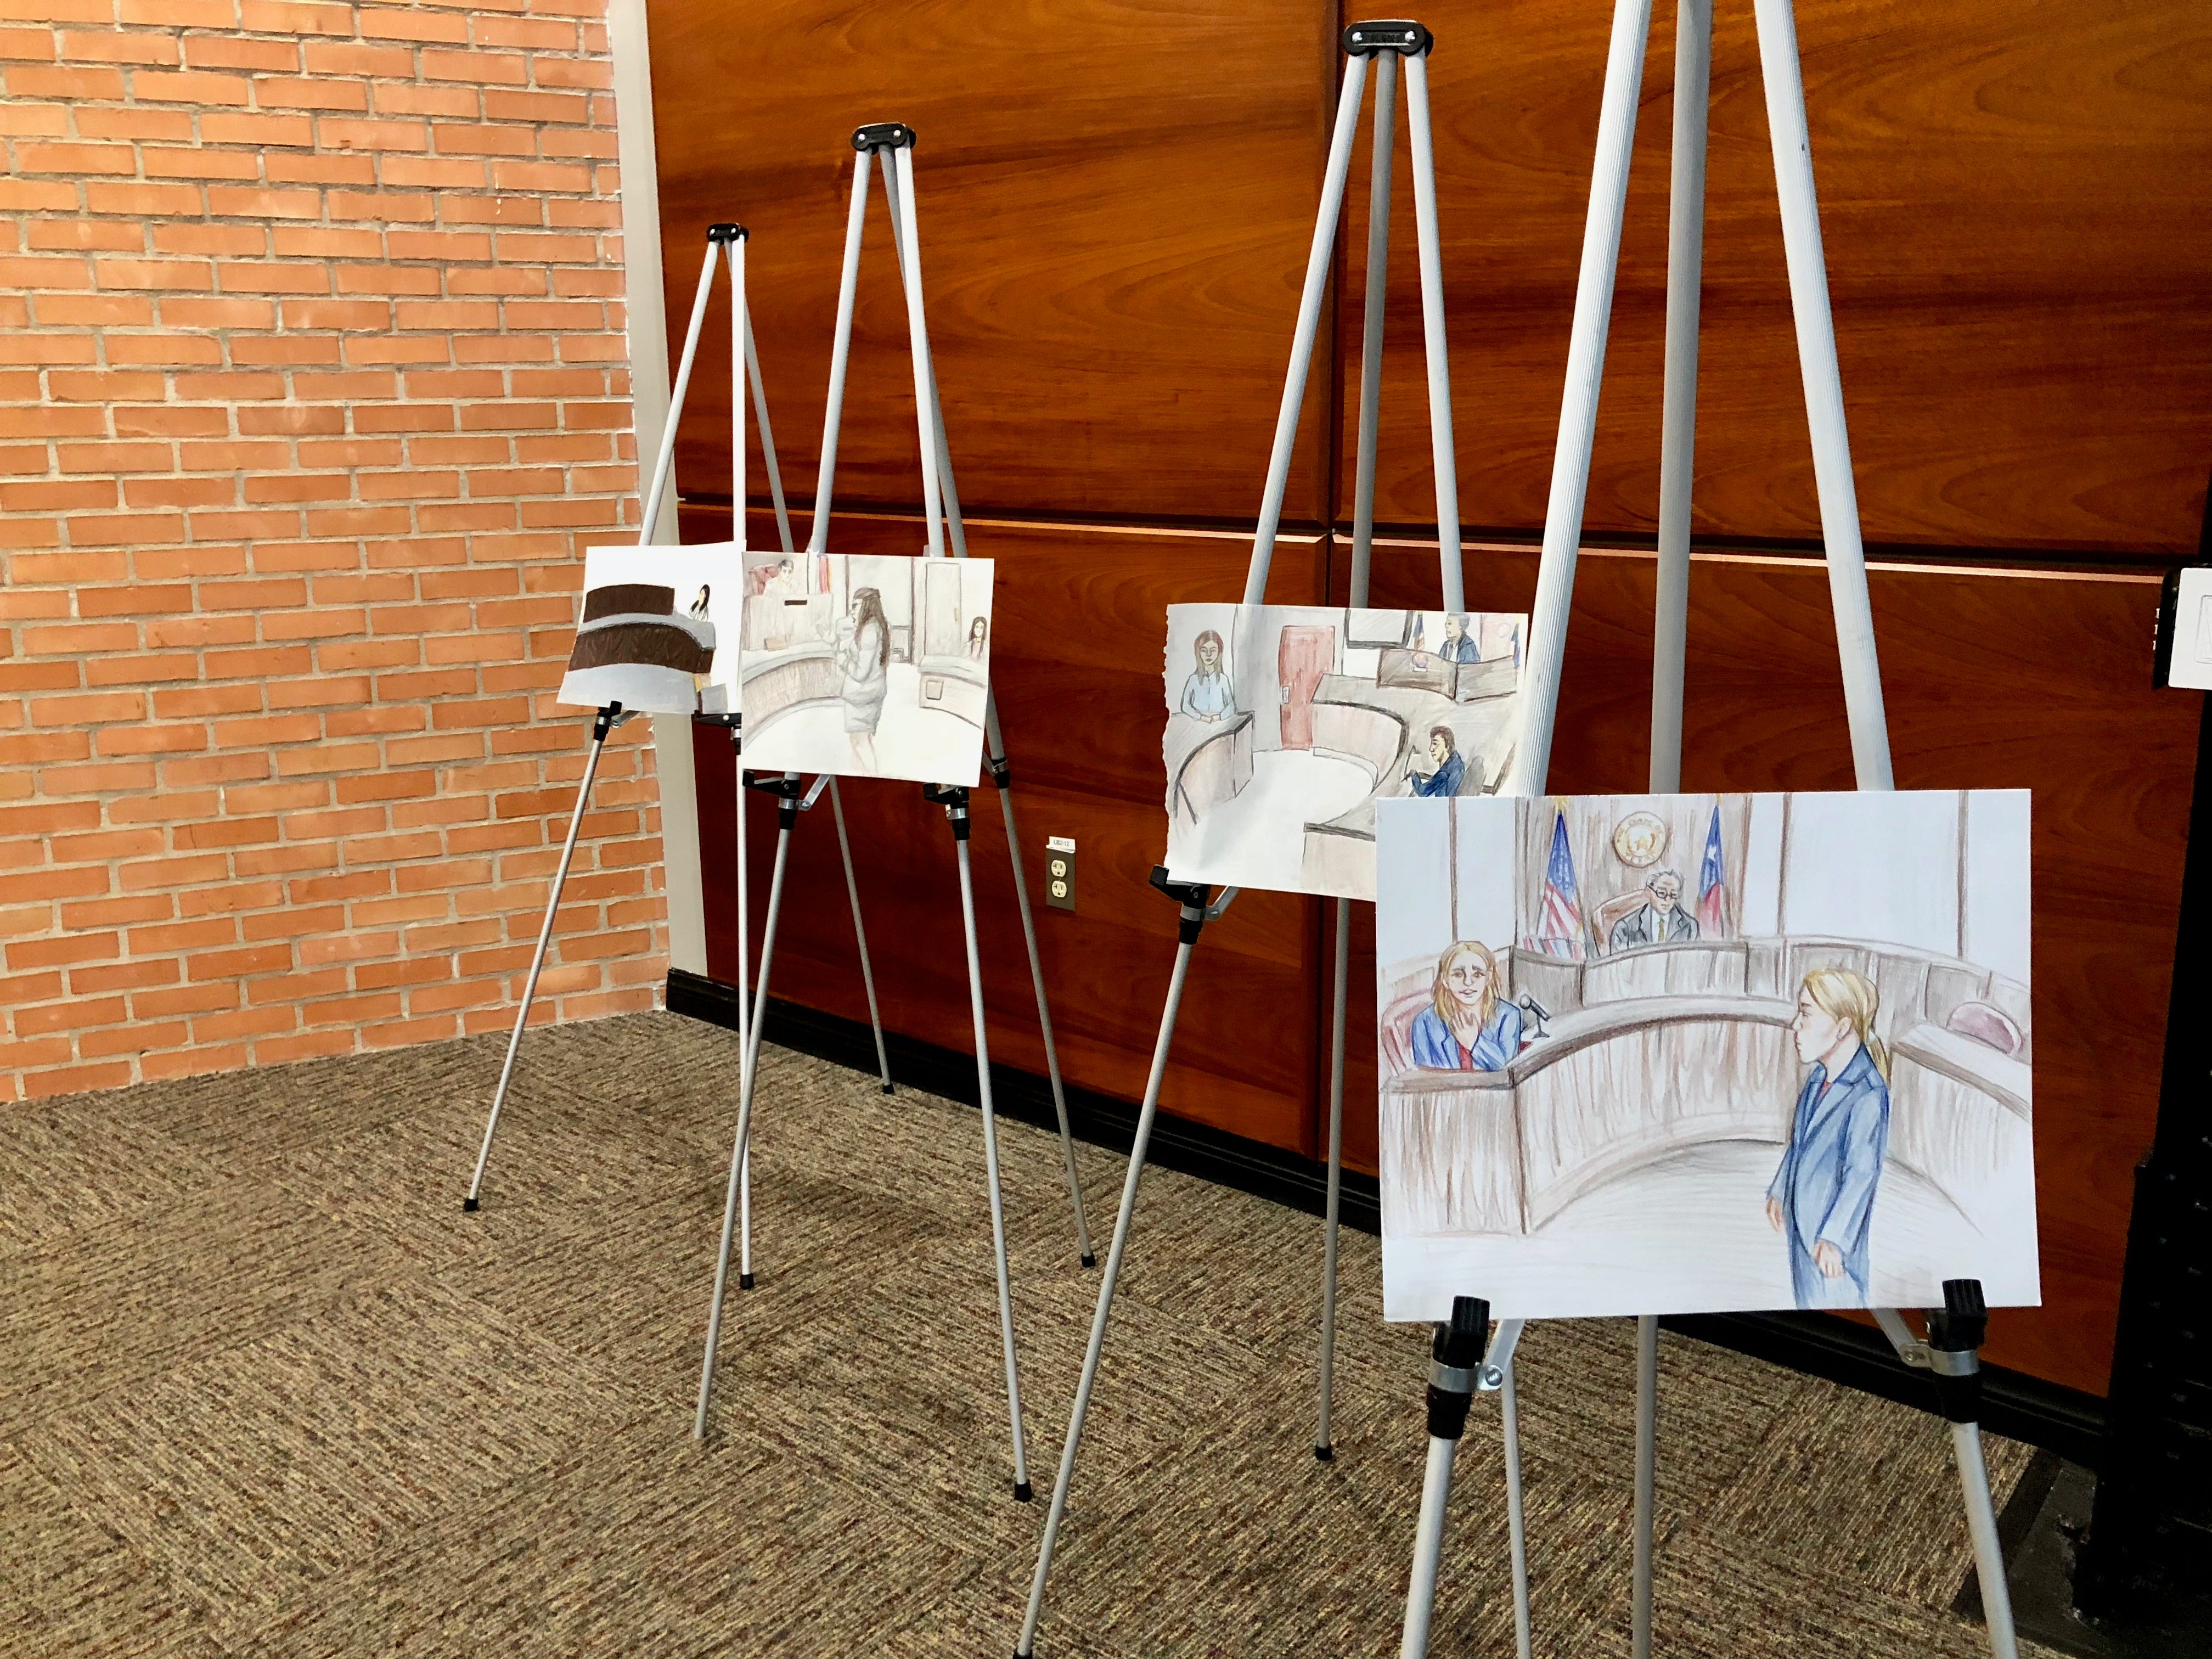 Sketches by student courtroom artists are displayed at a dinner following the 2019 mock trial competition.